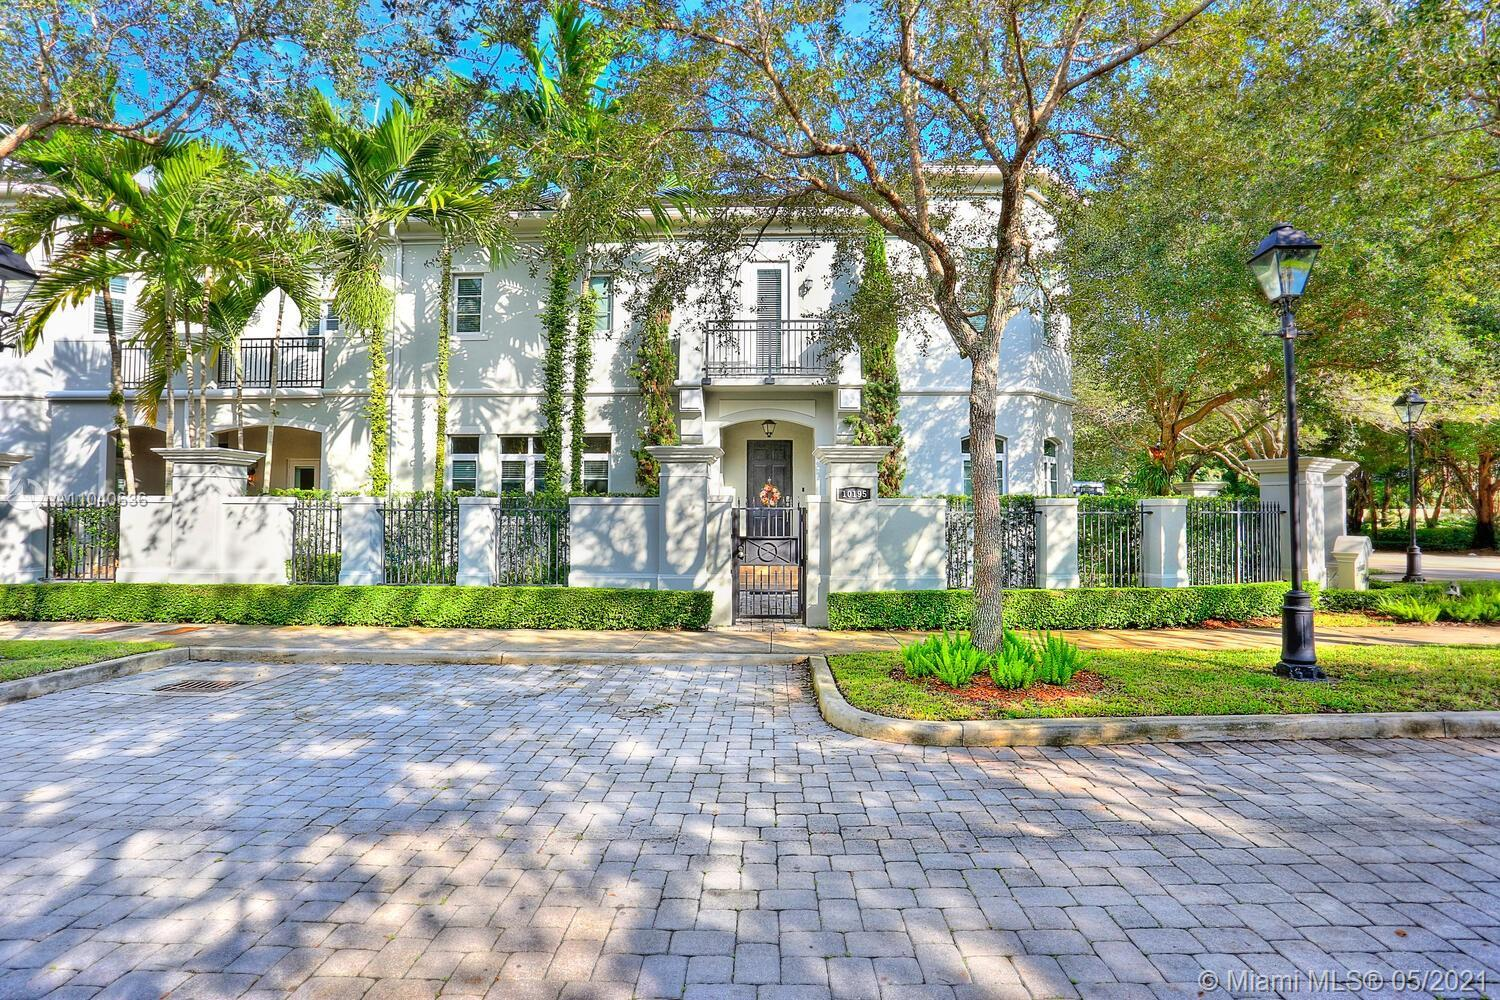 Welcome home to this North Pinecrest paradise! Offering all the comforts of a single family home yet